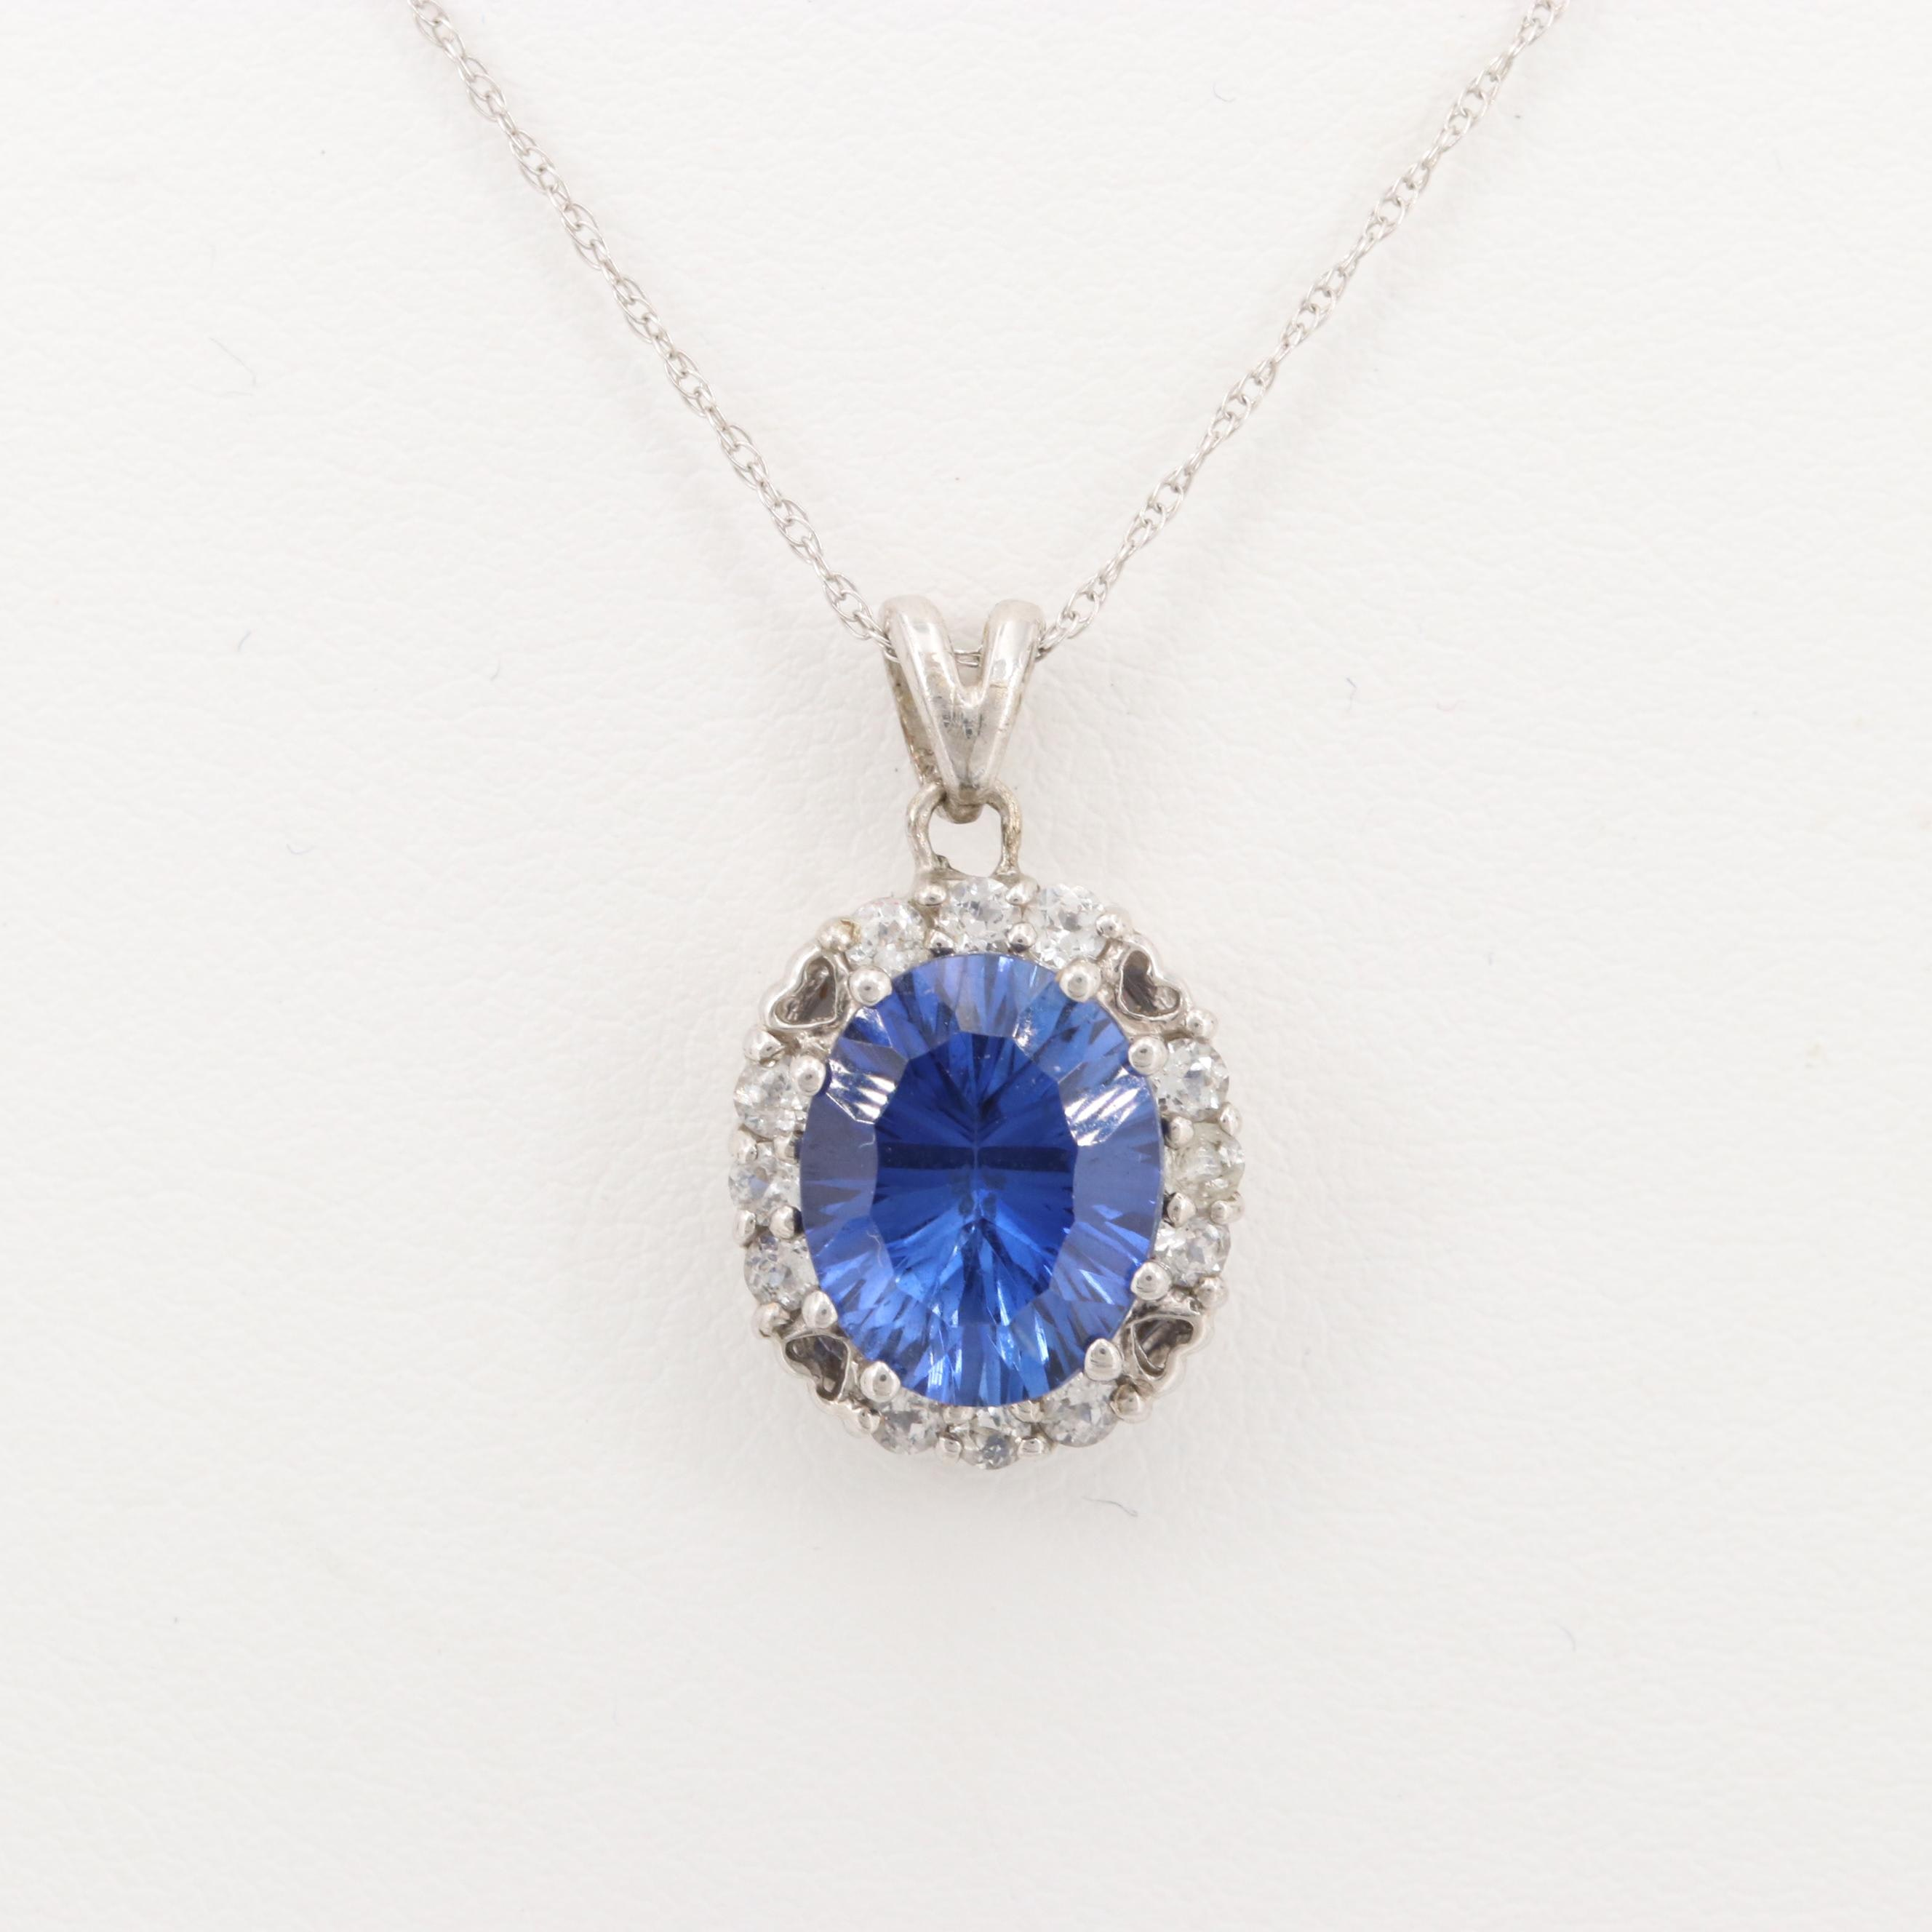 10K White Gold Synthetic Sapphire and Cubic Zirconia Pendant Necklace